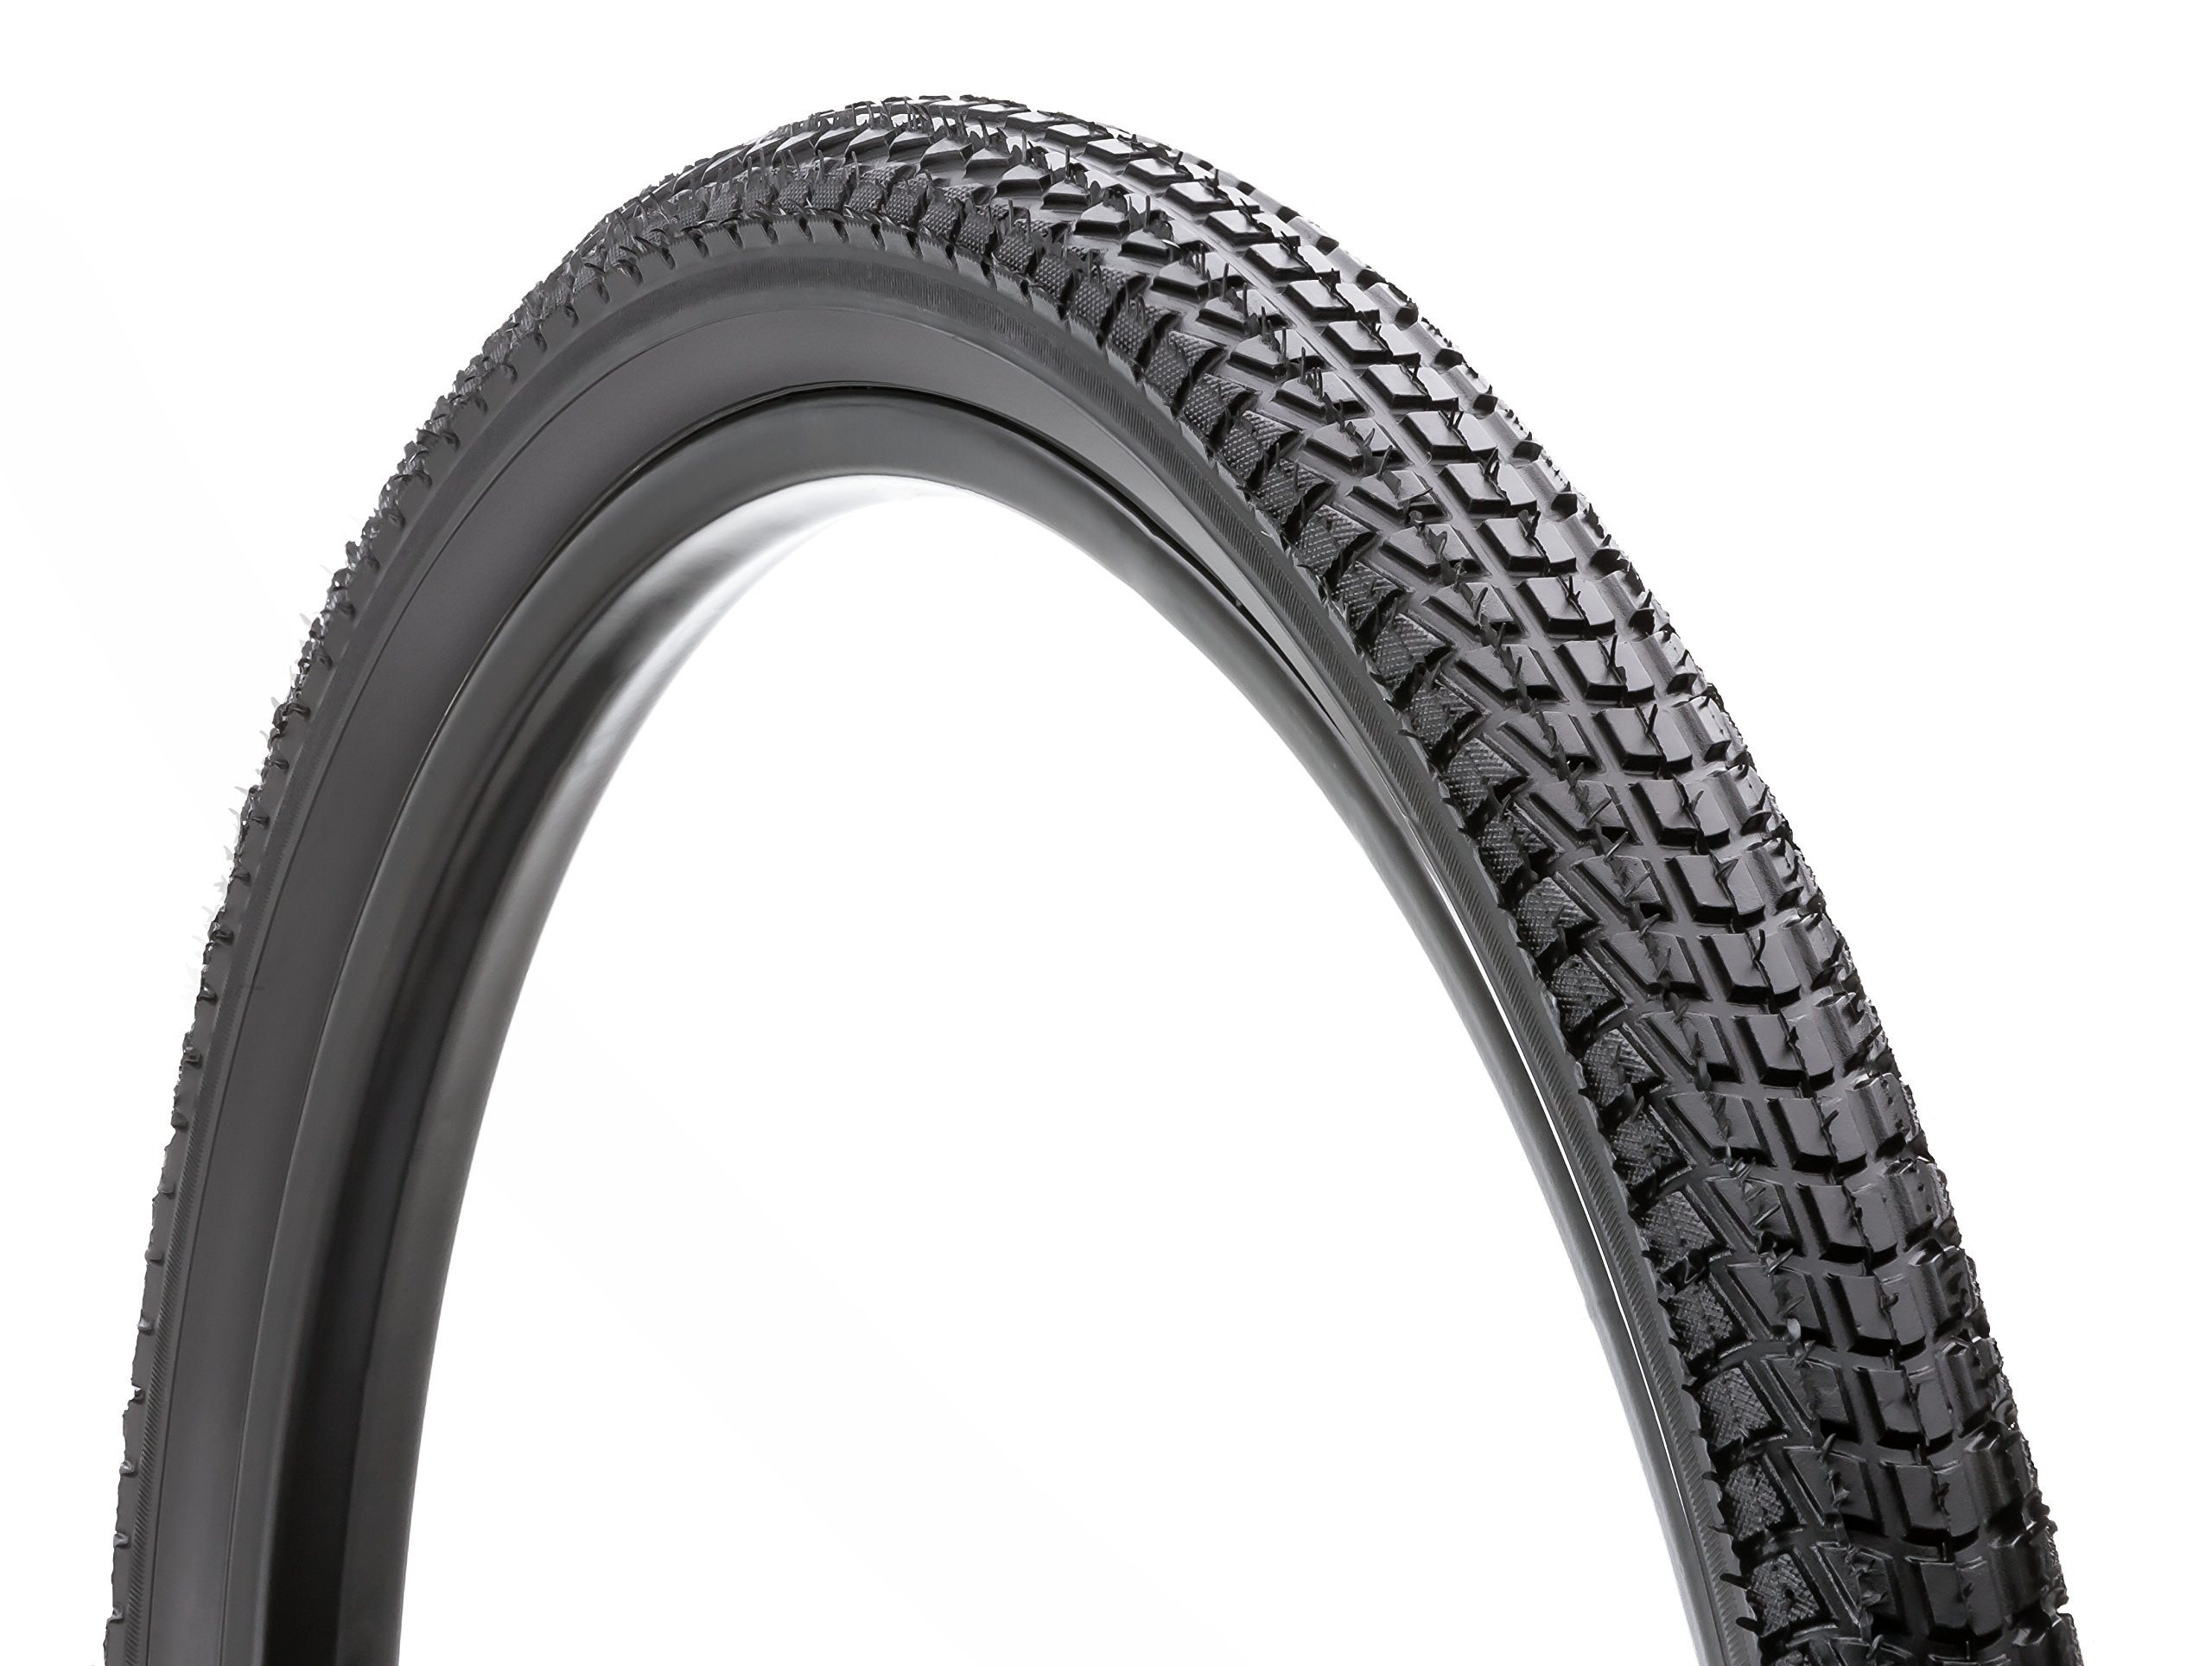 Schwinn Bike Replacement Tire with Kevlar (26 inch x 1.95 inch) black, hybrid/comfort